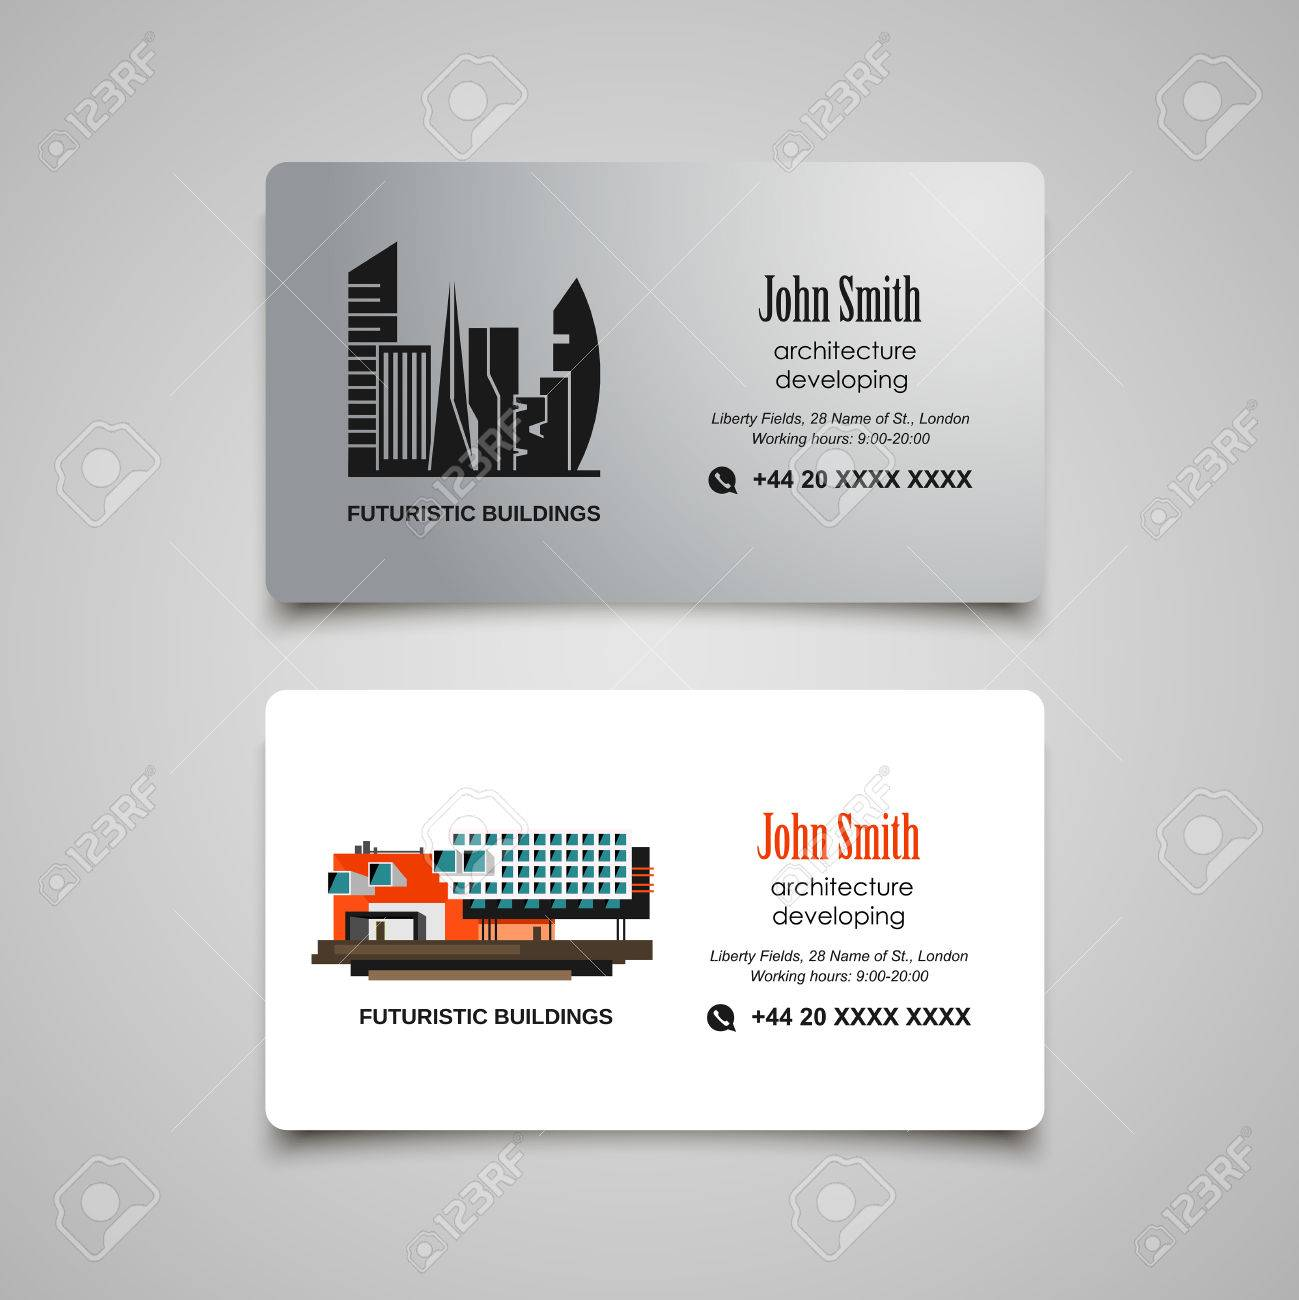 Architecture Developing Or Rent Business Card Template Royalty Free ...